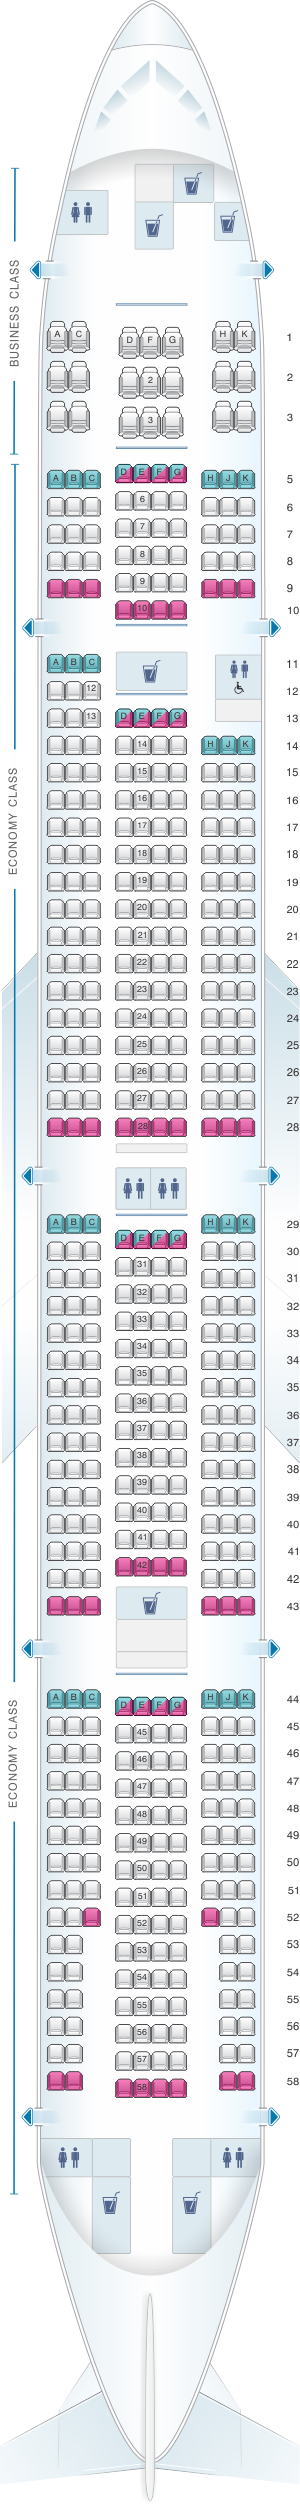 Seat map for ANA - All Nippon Airways Boeing B777 300 domestic